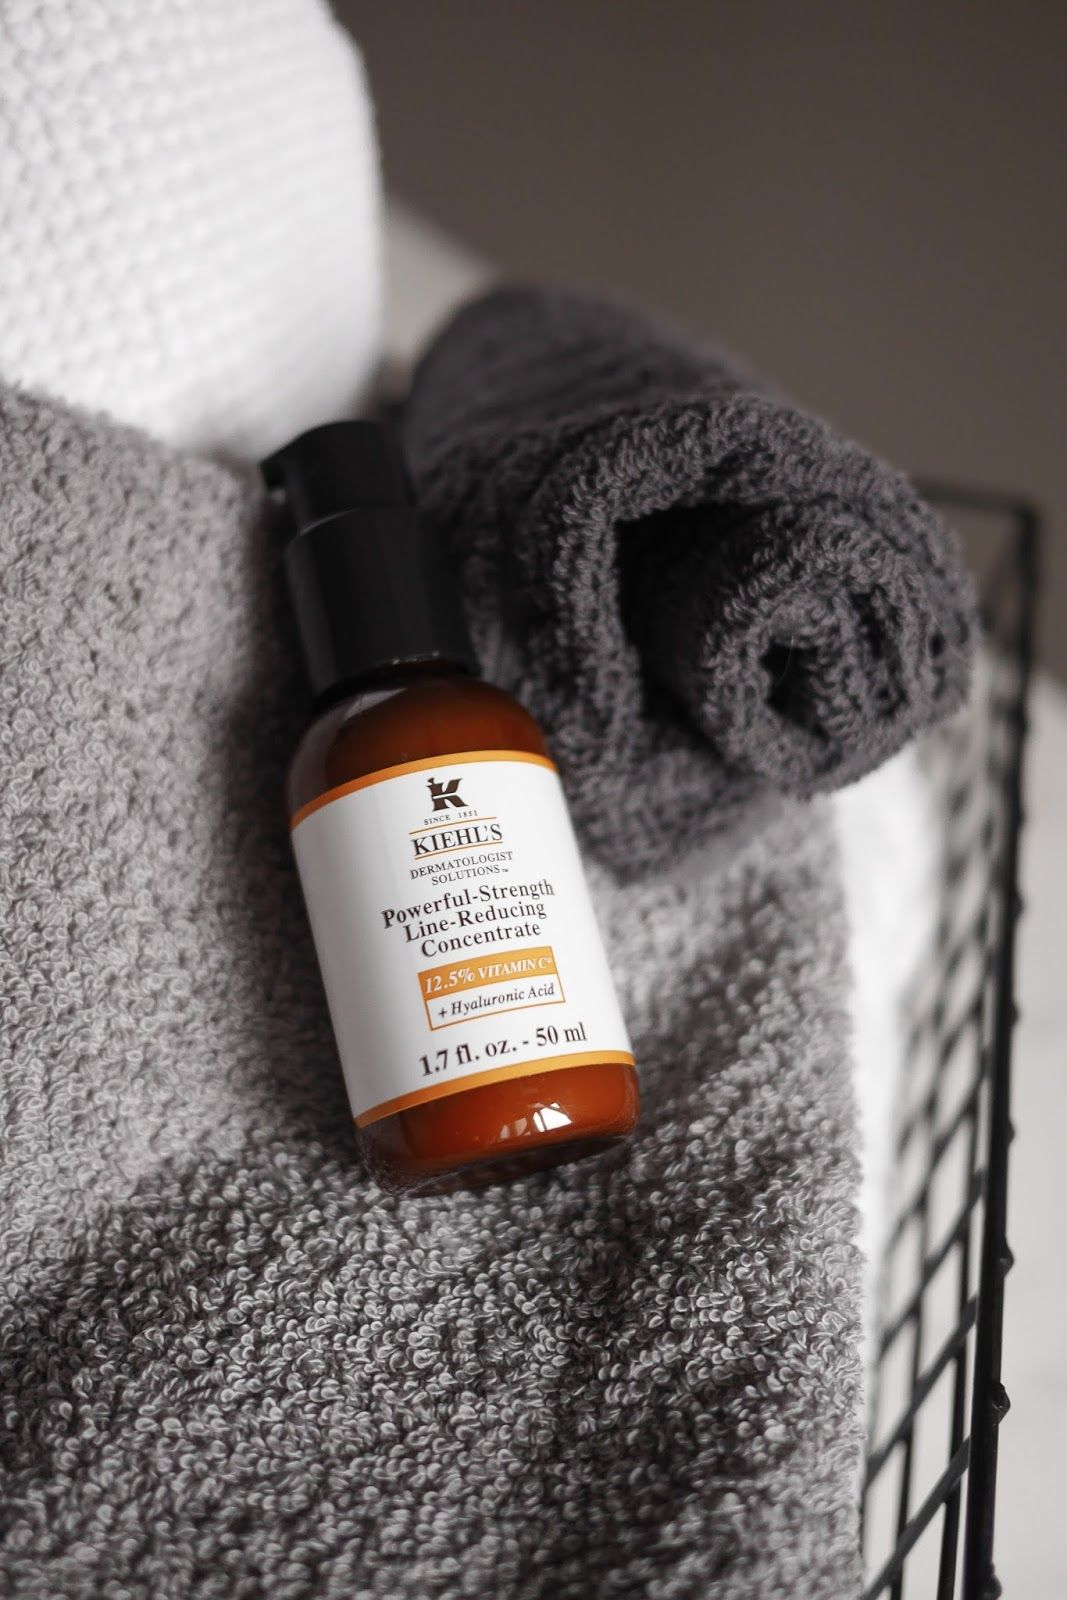 Photo of Kiehl's Powerful-Strength Line-Reducing Concentrate – Vitamin-C Serum in your 20s?